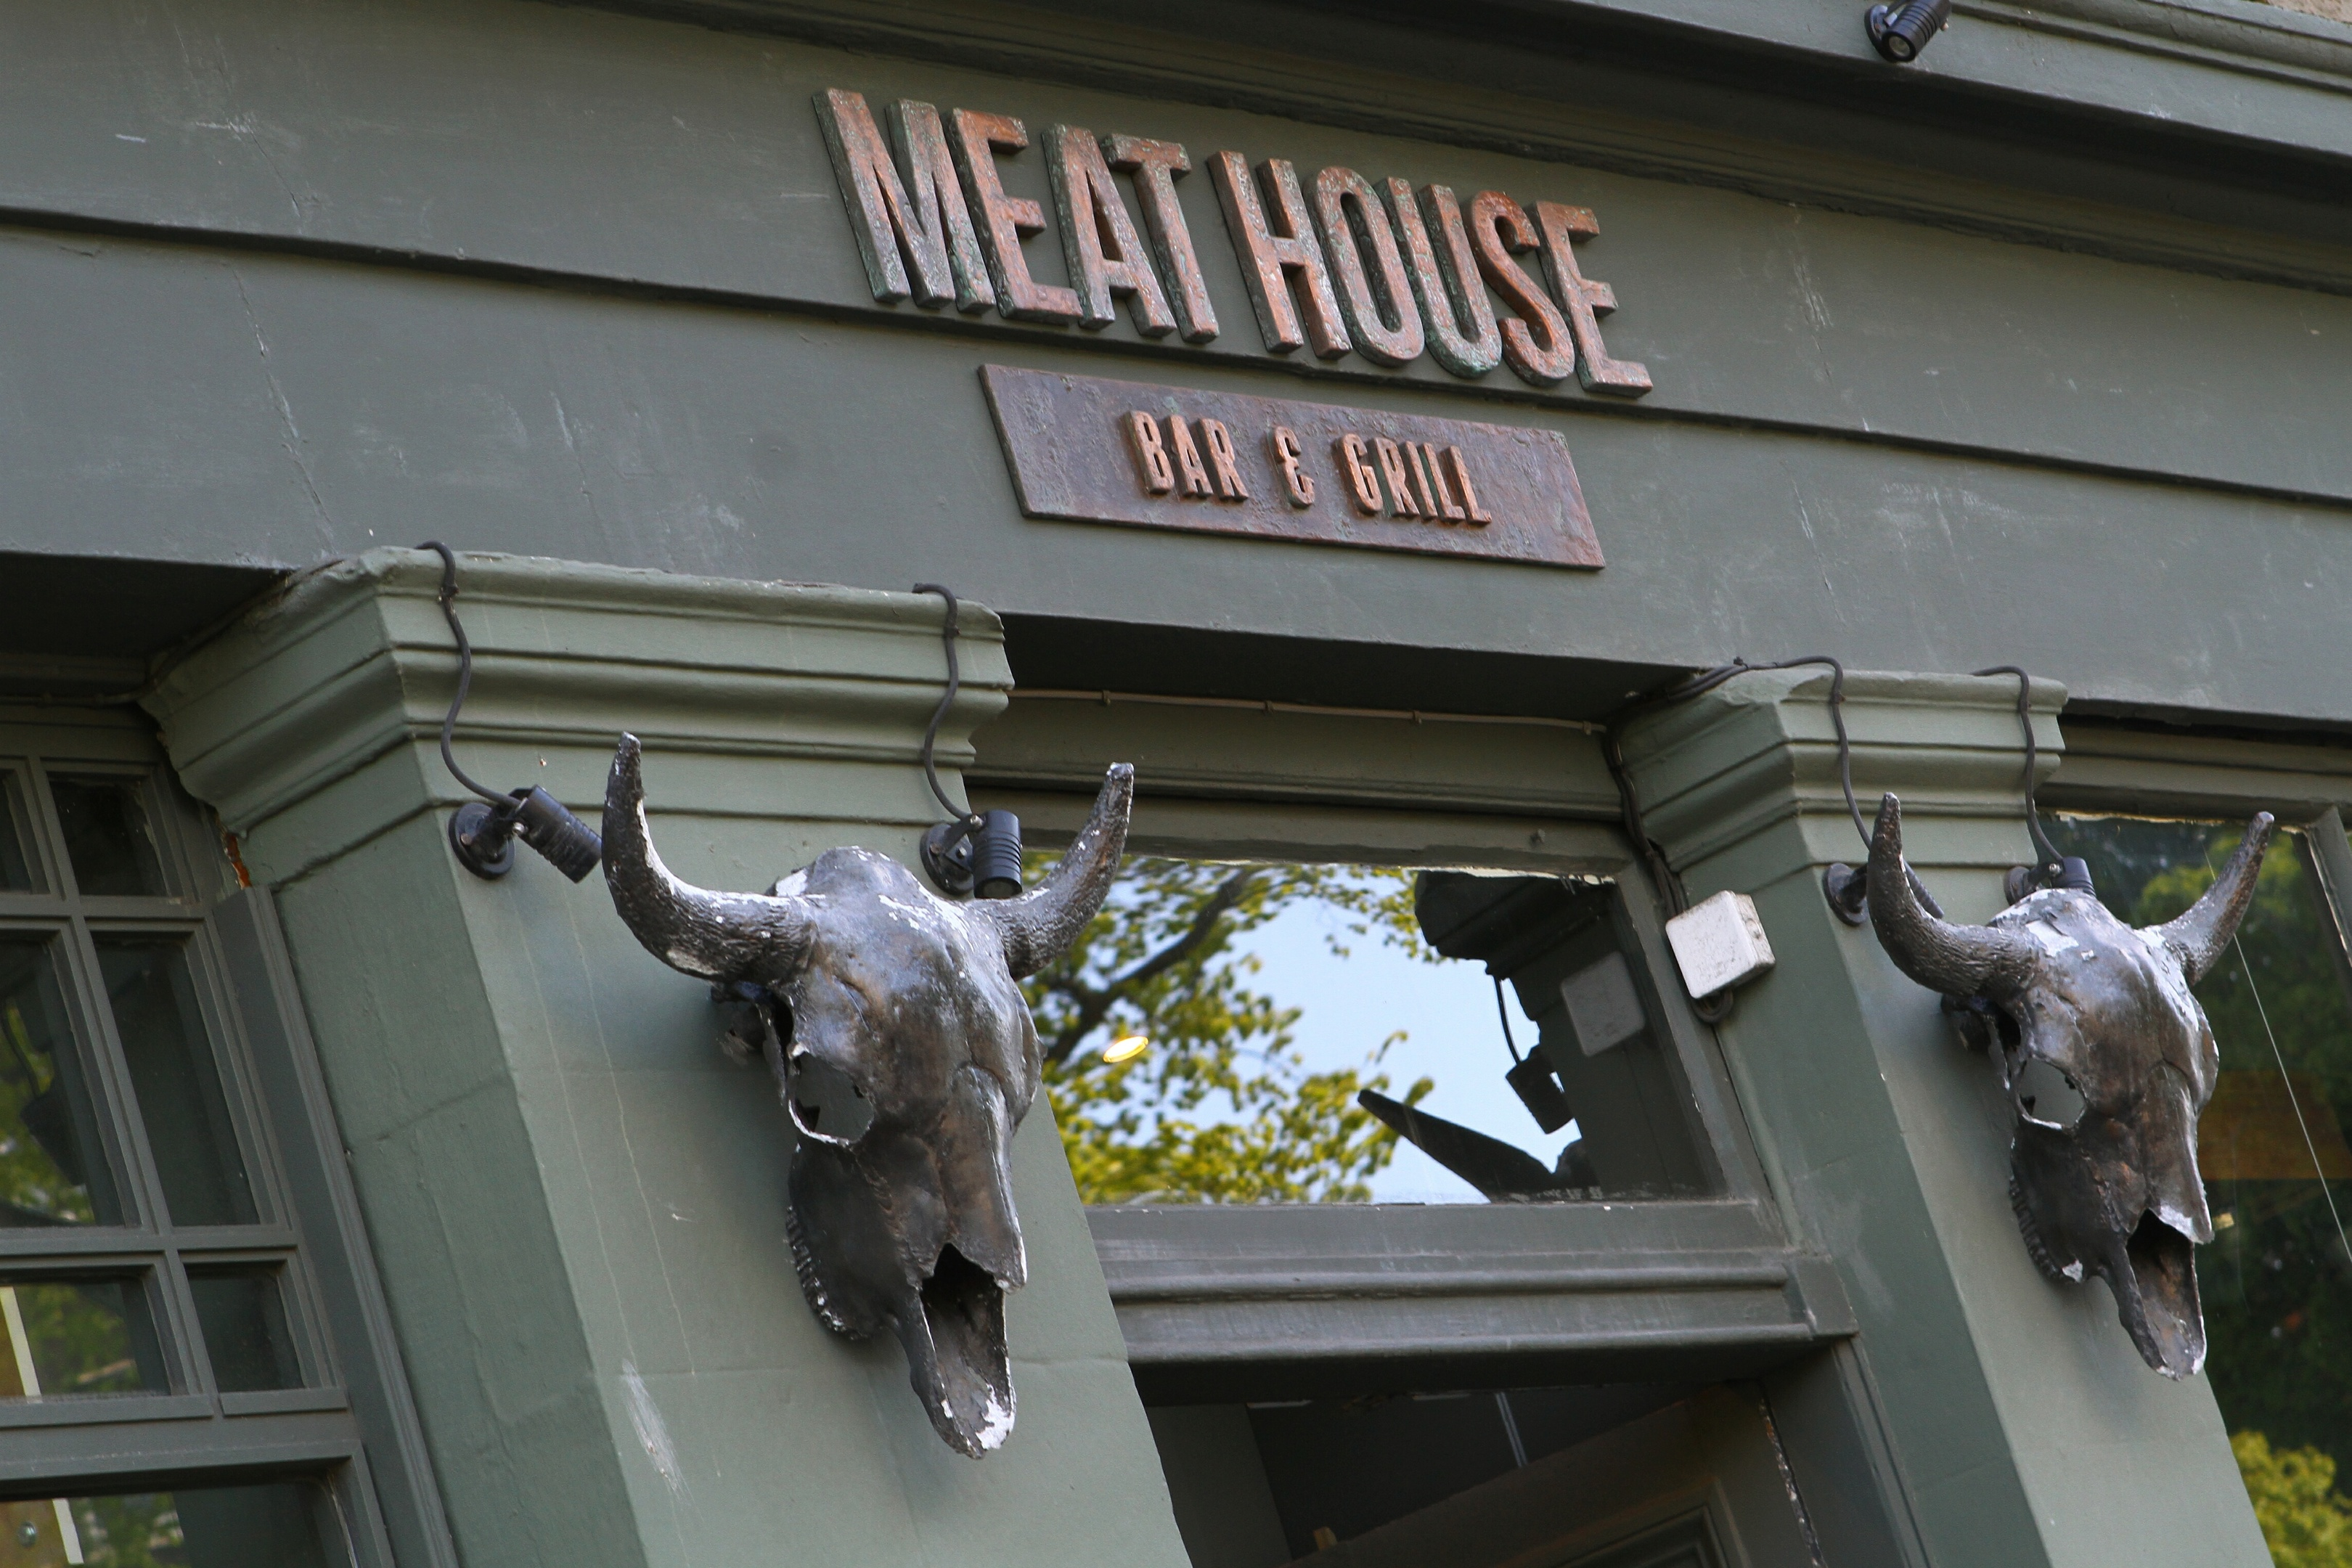 The Meat House restaurant closed suddenly at the end of January.